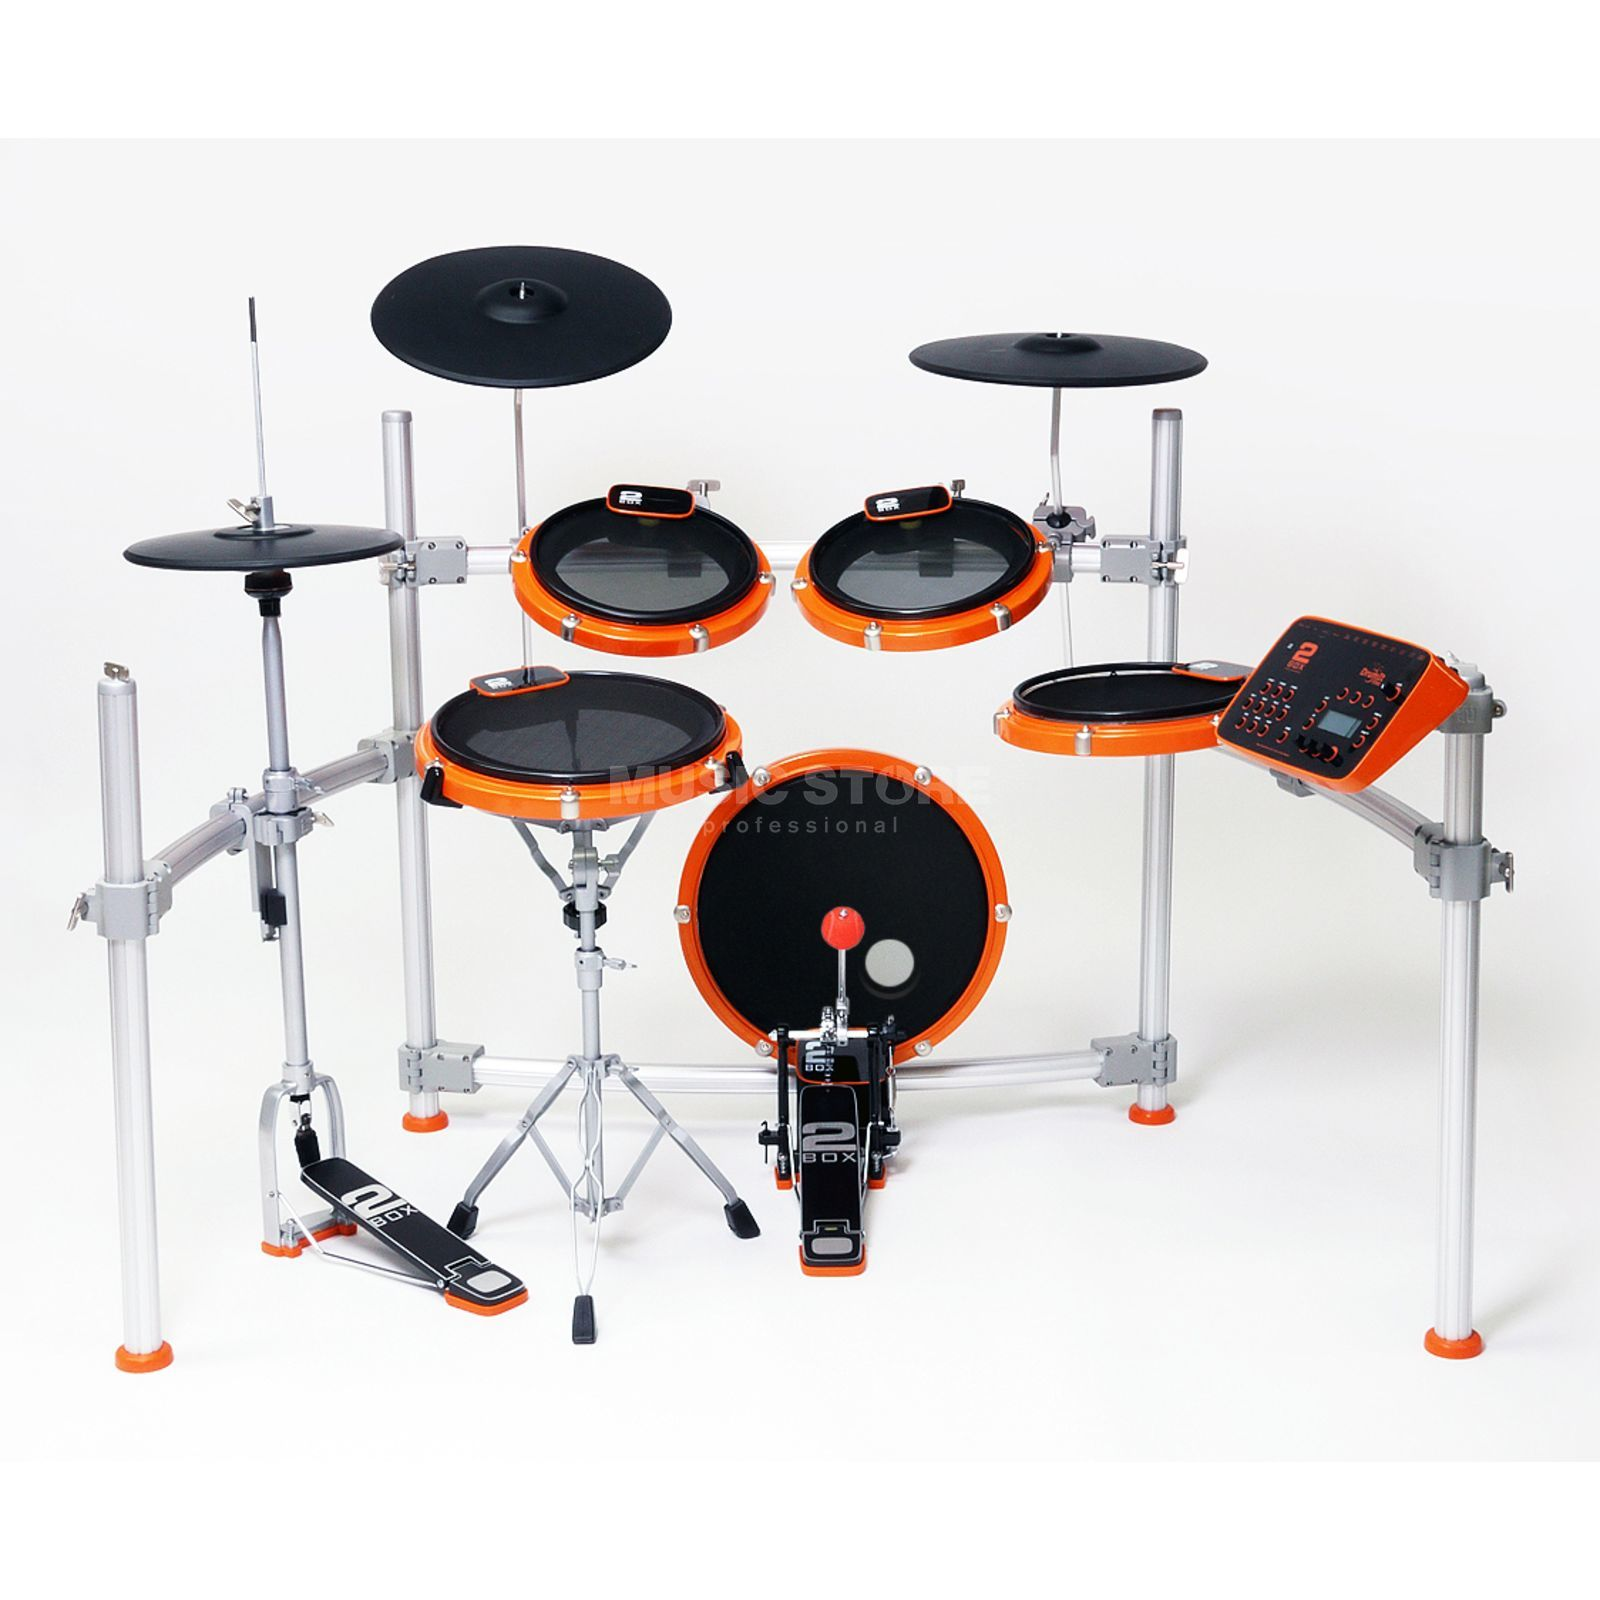 2Box Set de Bateria Digital Drum it Five, MK2  Imagem do produto